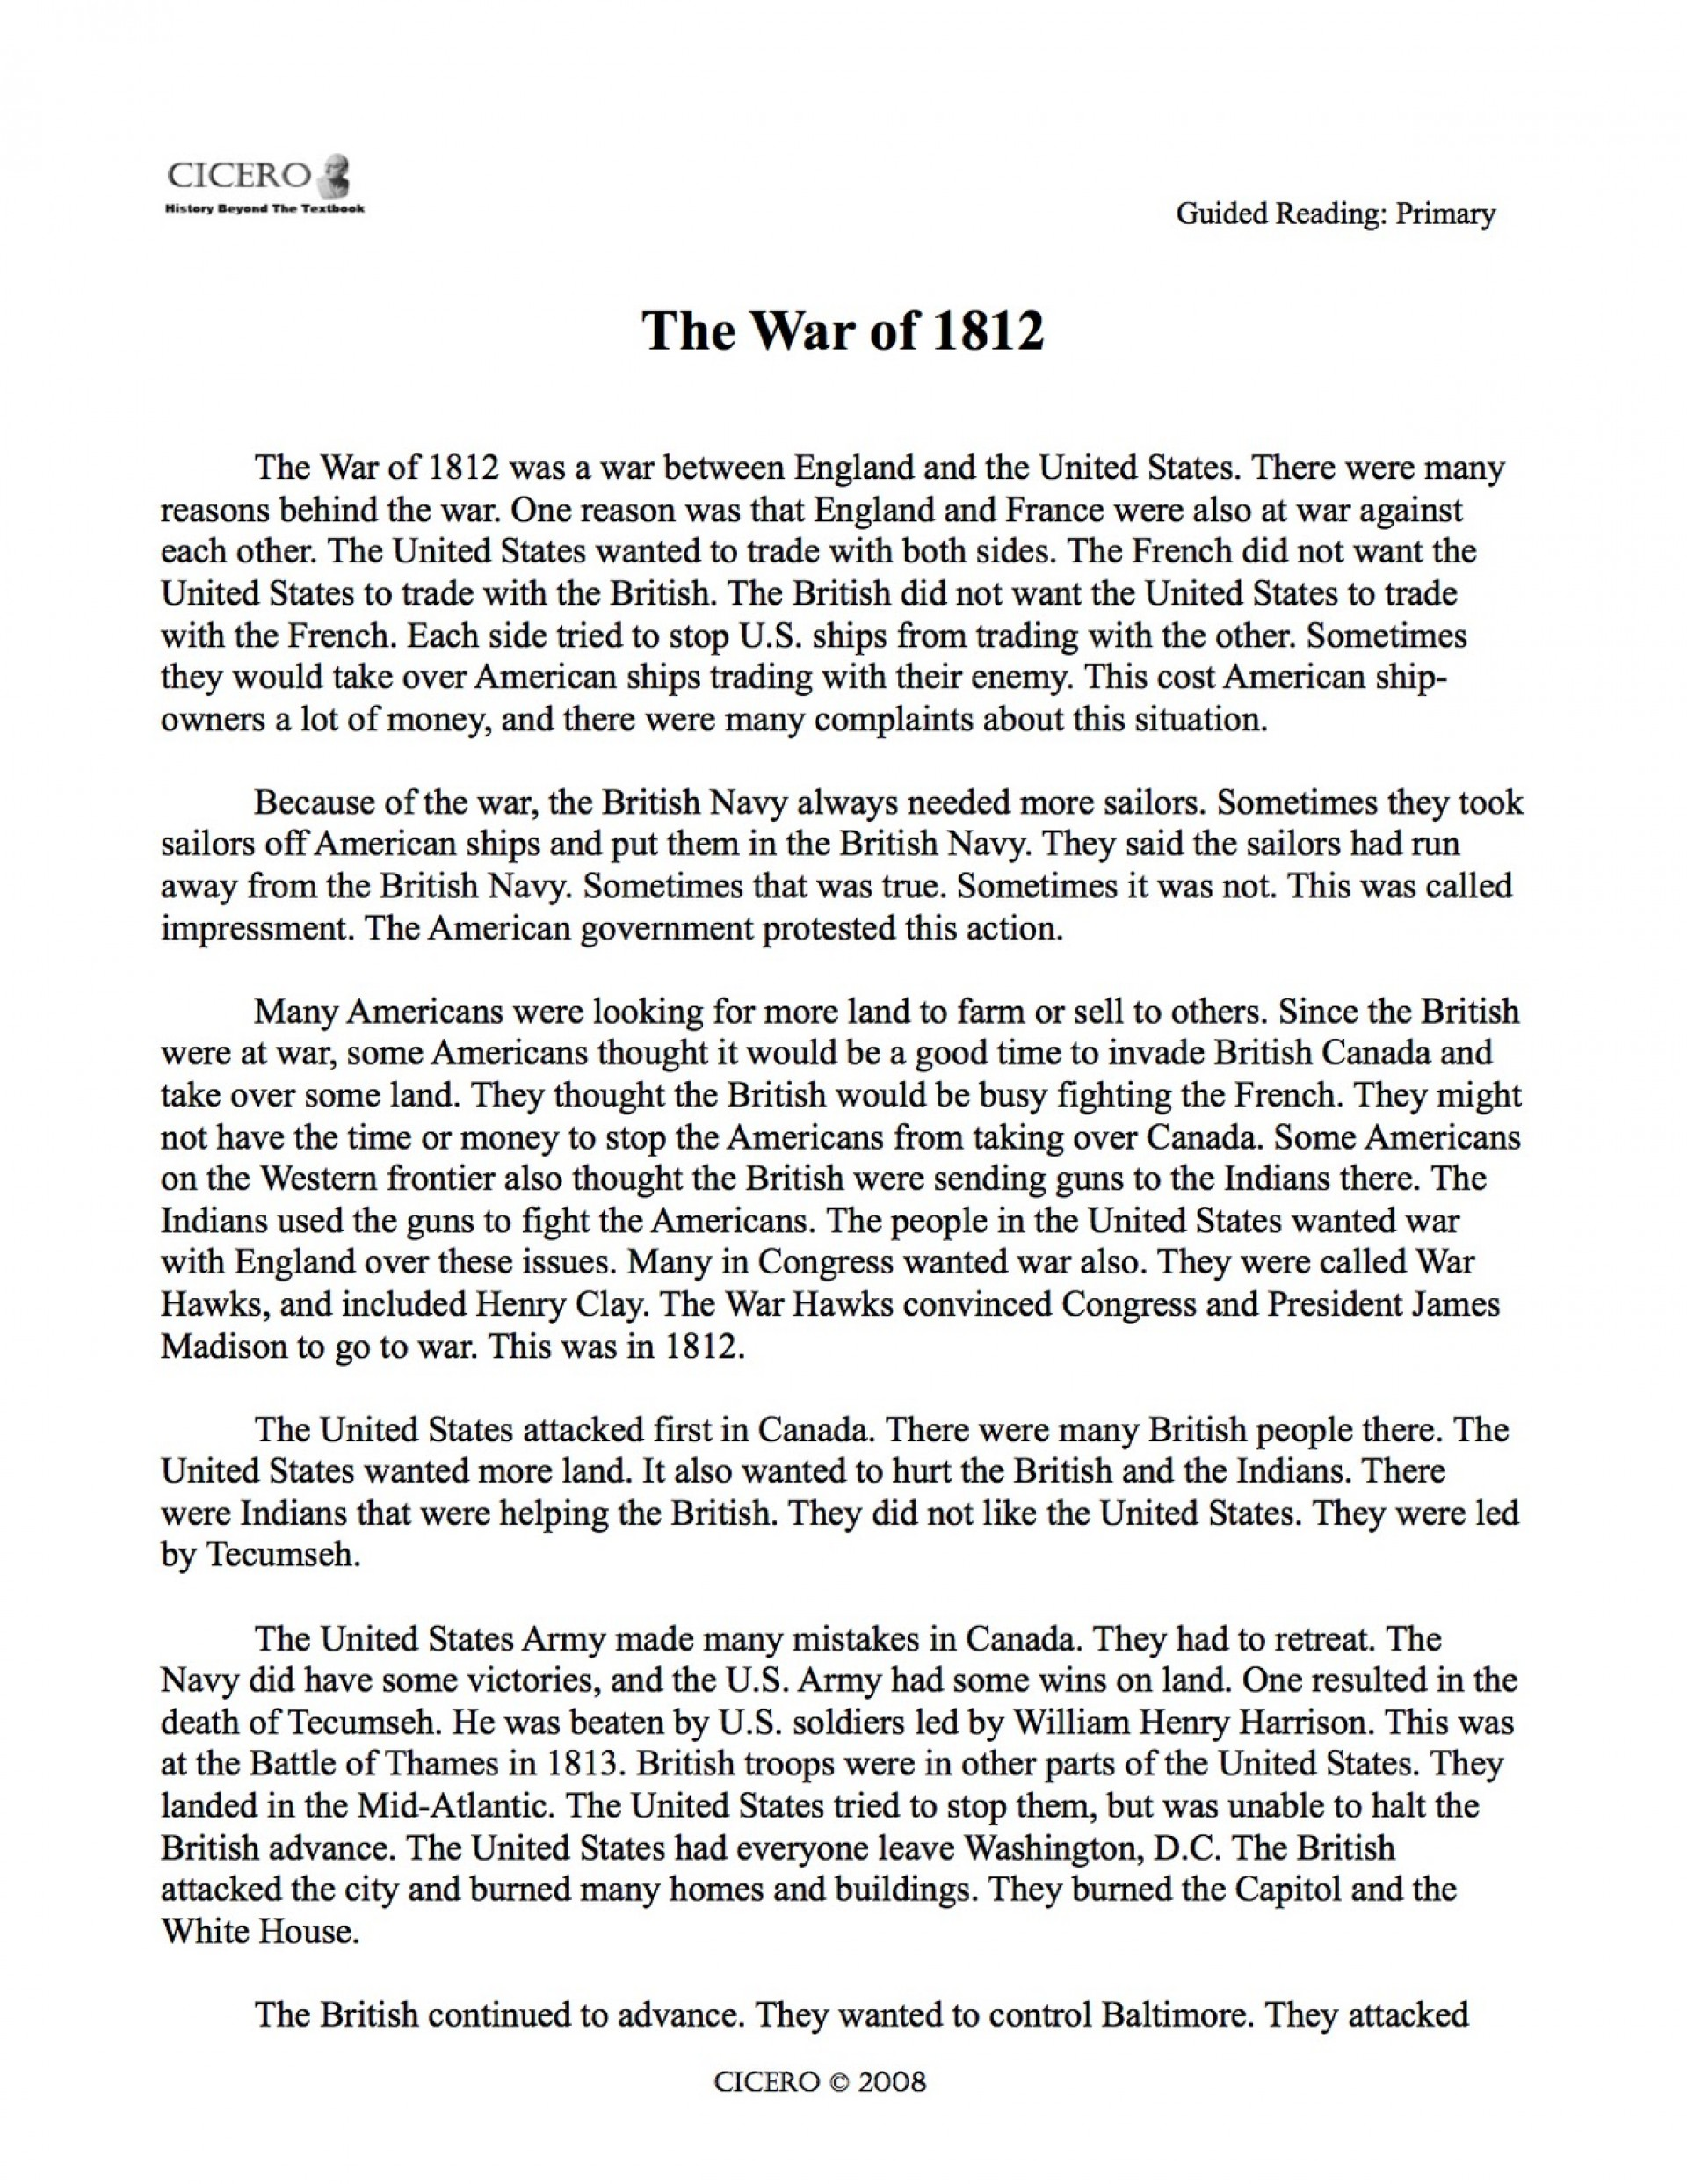 004 Trojan War Essay Doorway Keyword Heilbrunn Argumentative Against Transgender Warof1812re On Bathrooms Stirring Persuasive Topics Paper Outline 1920